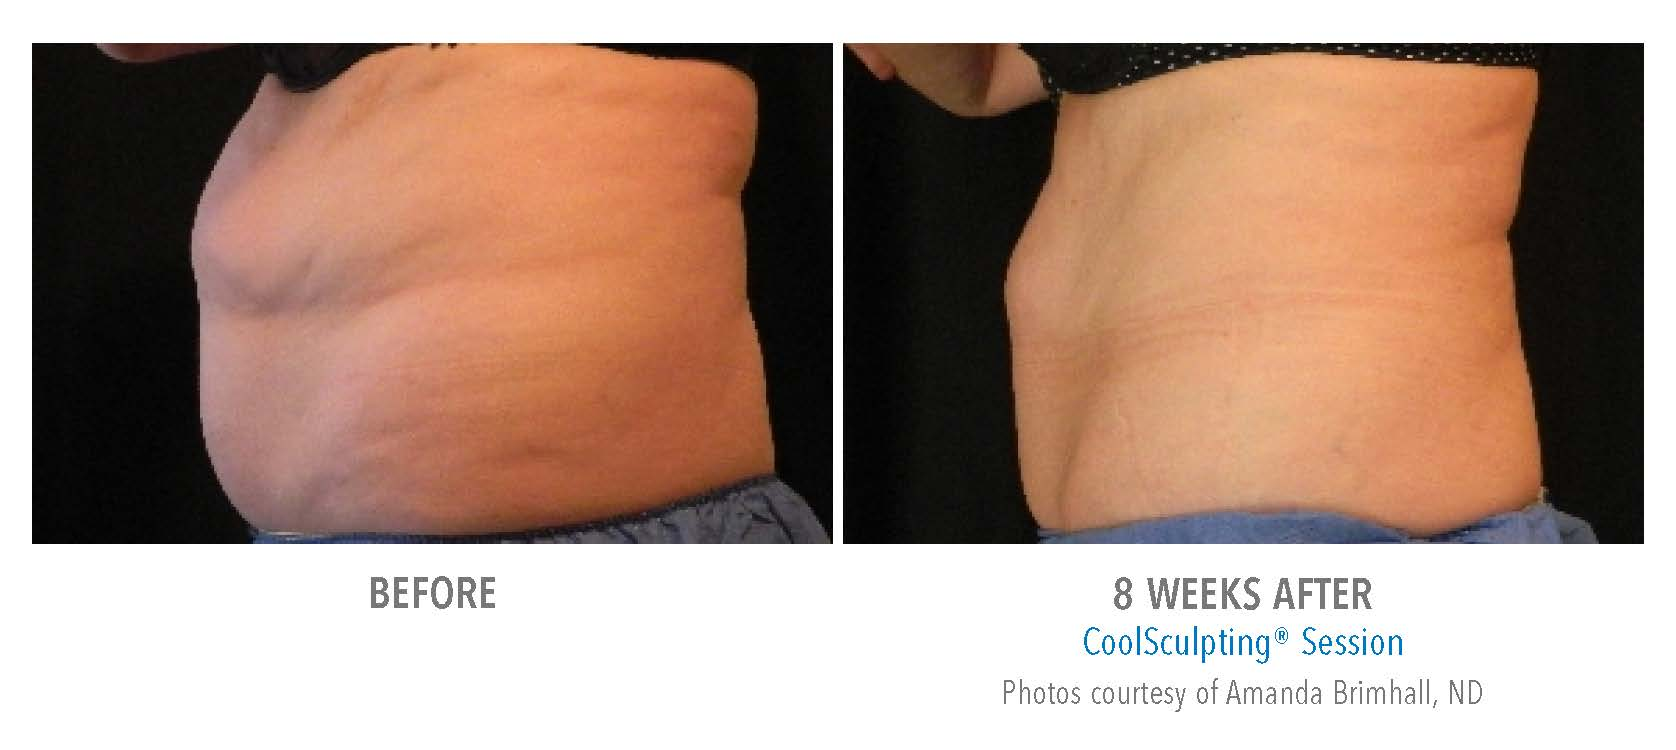 before after coolsculpting